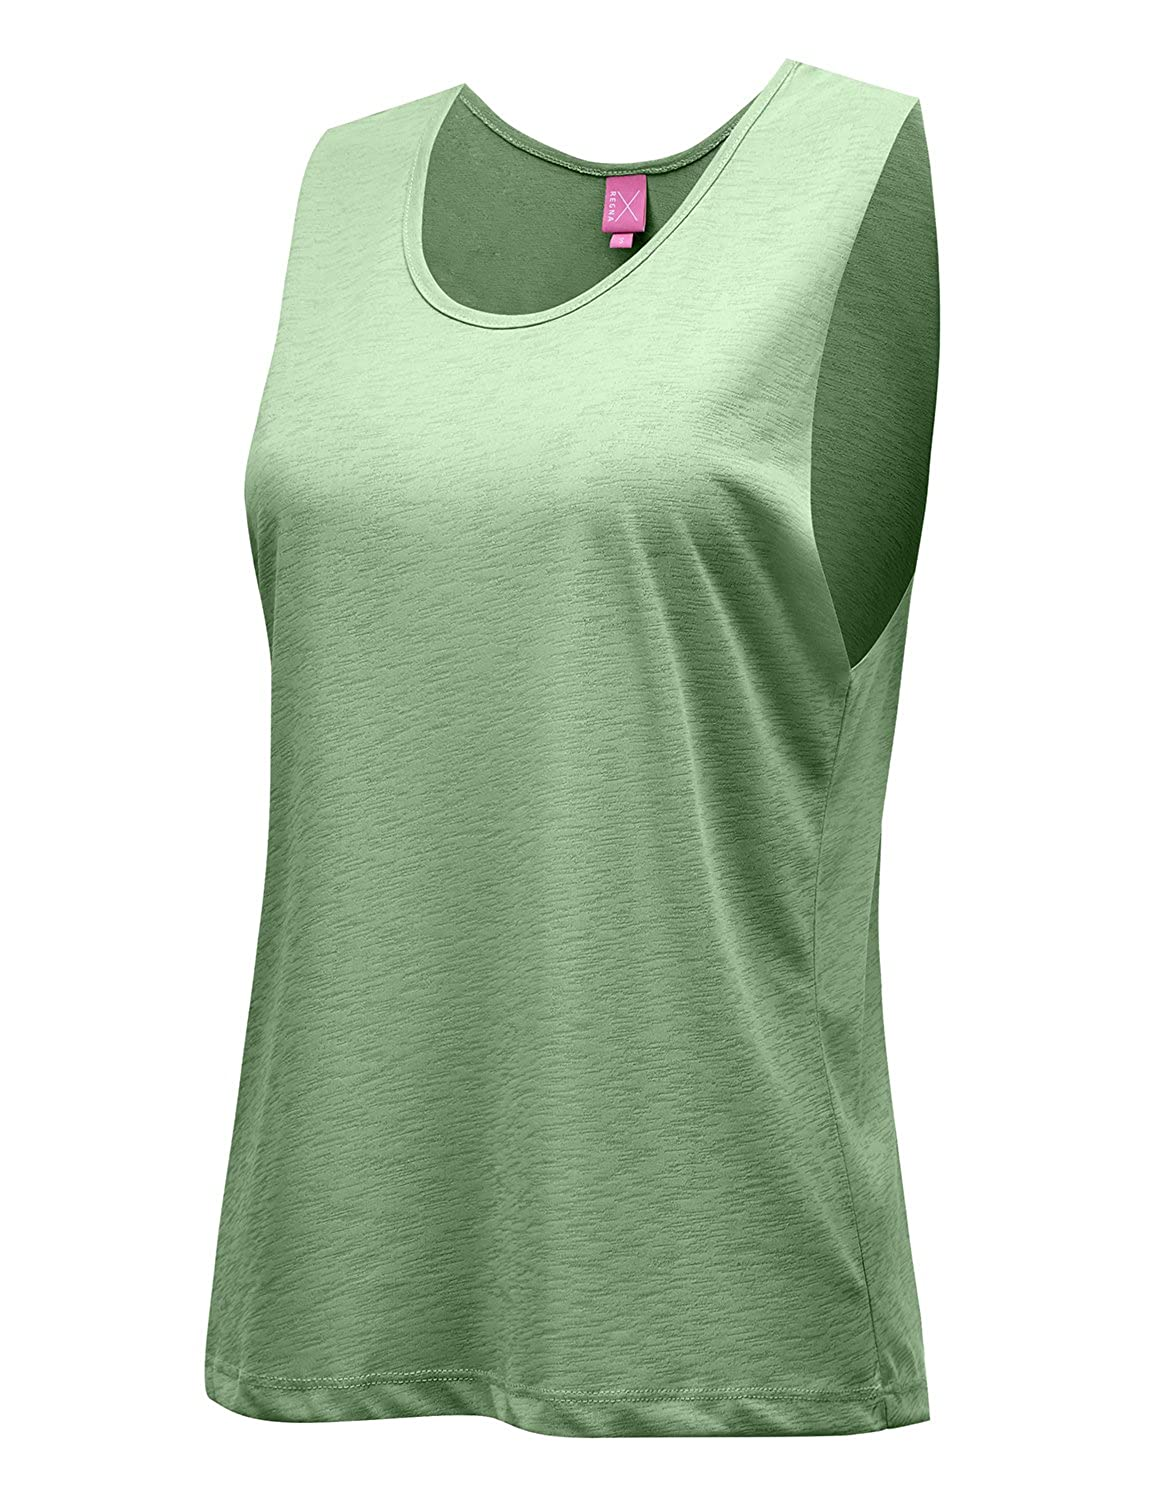 ddb542e0cf376 REGNA X NO BOTHER SPORT TANK-TOPS take your on-the-run fashion up a notch  with a unique